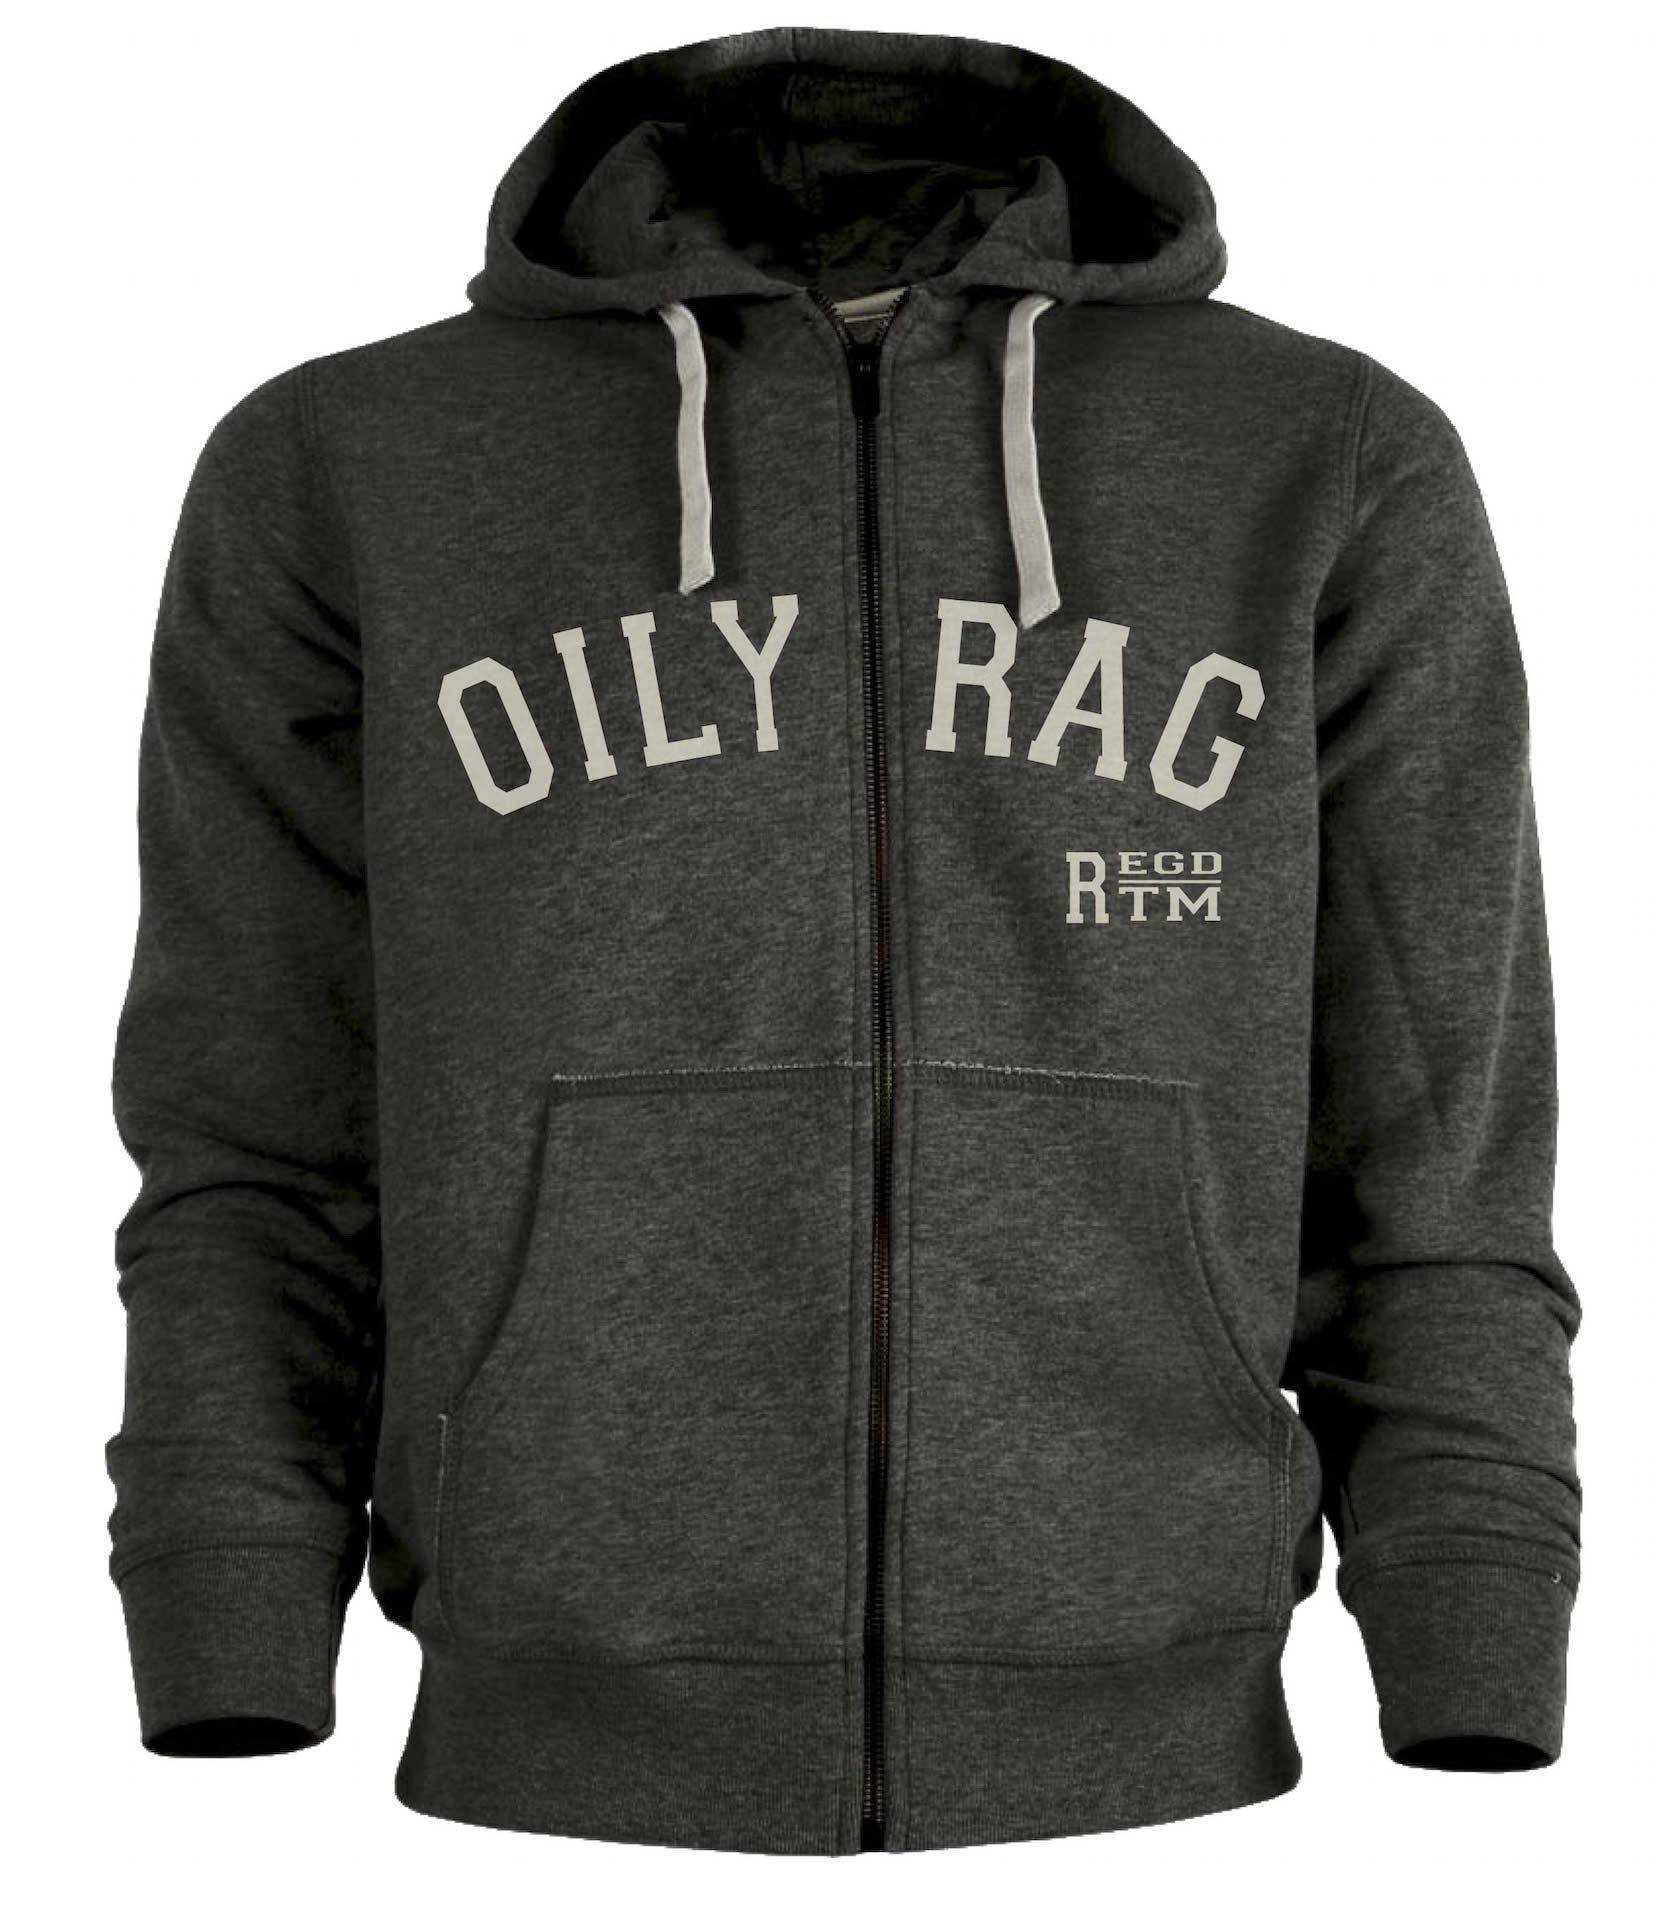 Oily Rag Clothing - Oily Rag Clothing Herren Marke Reißverschluss Hoodie - Hoodies | Sweatshirts | Wind Stoppers - Salt Flats Clothing